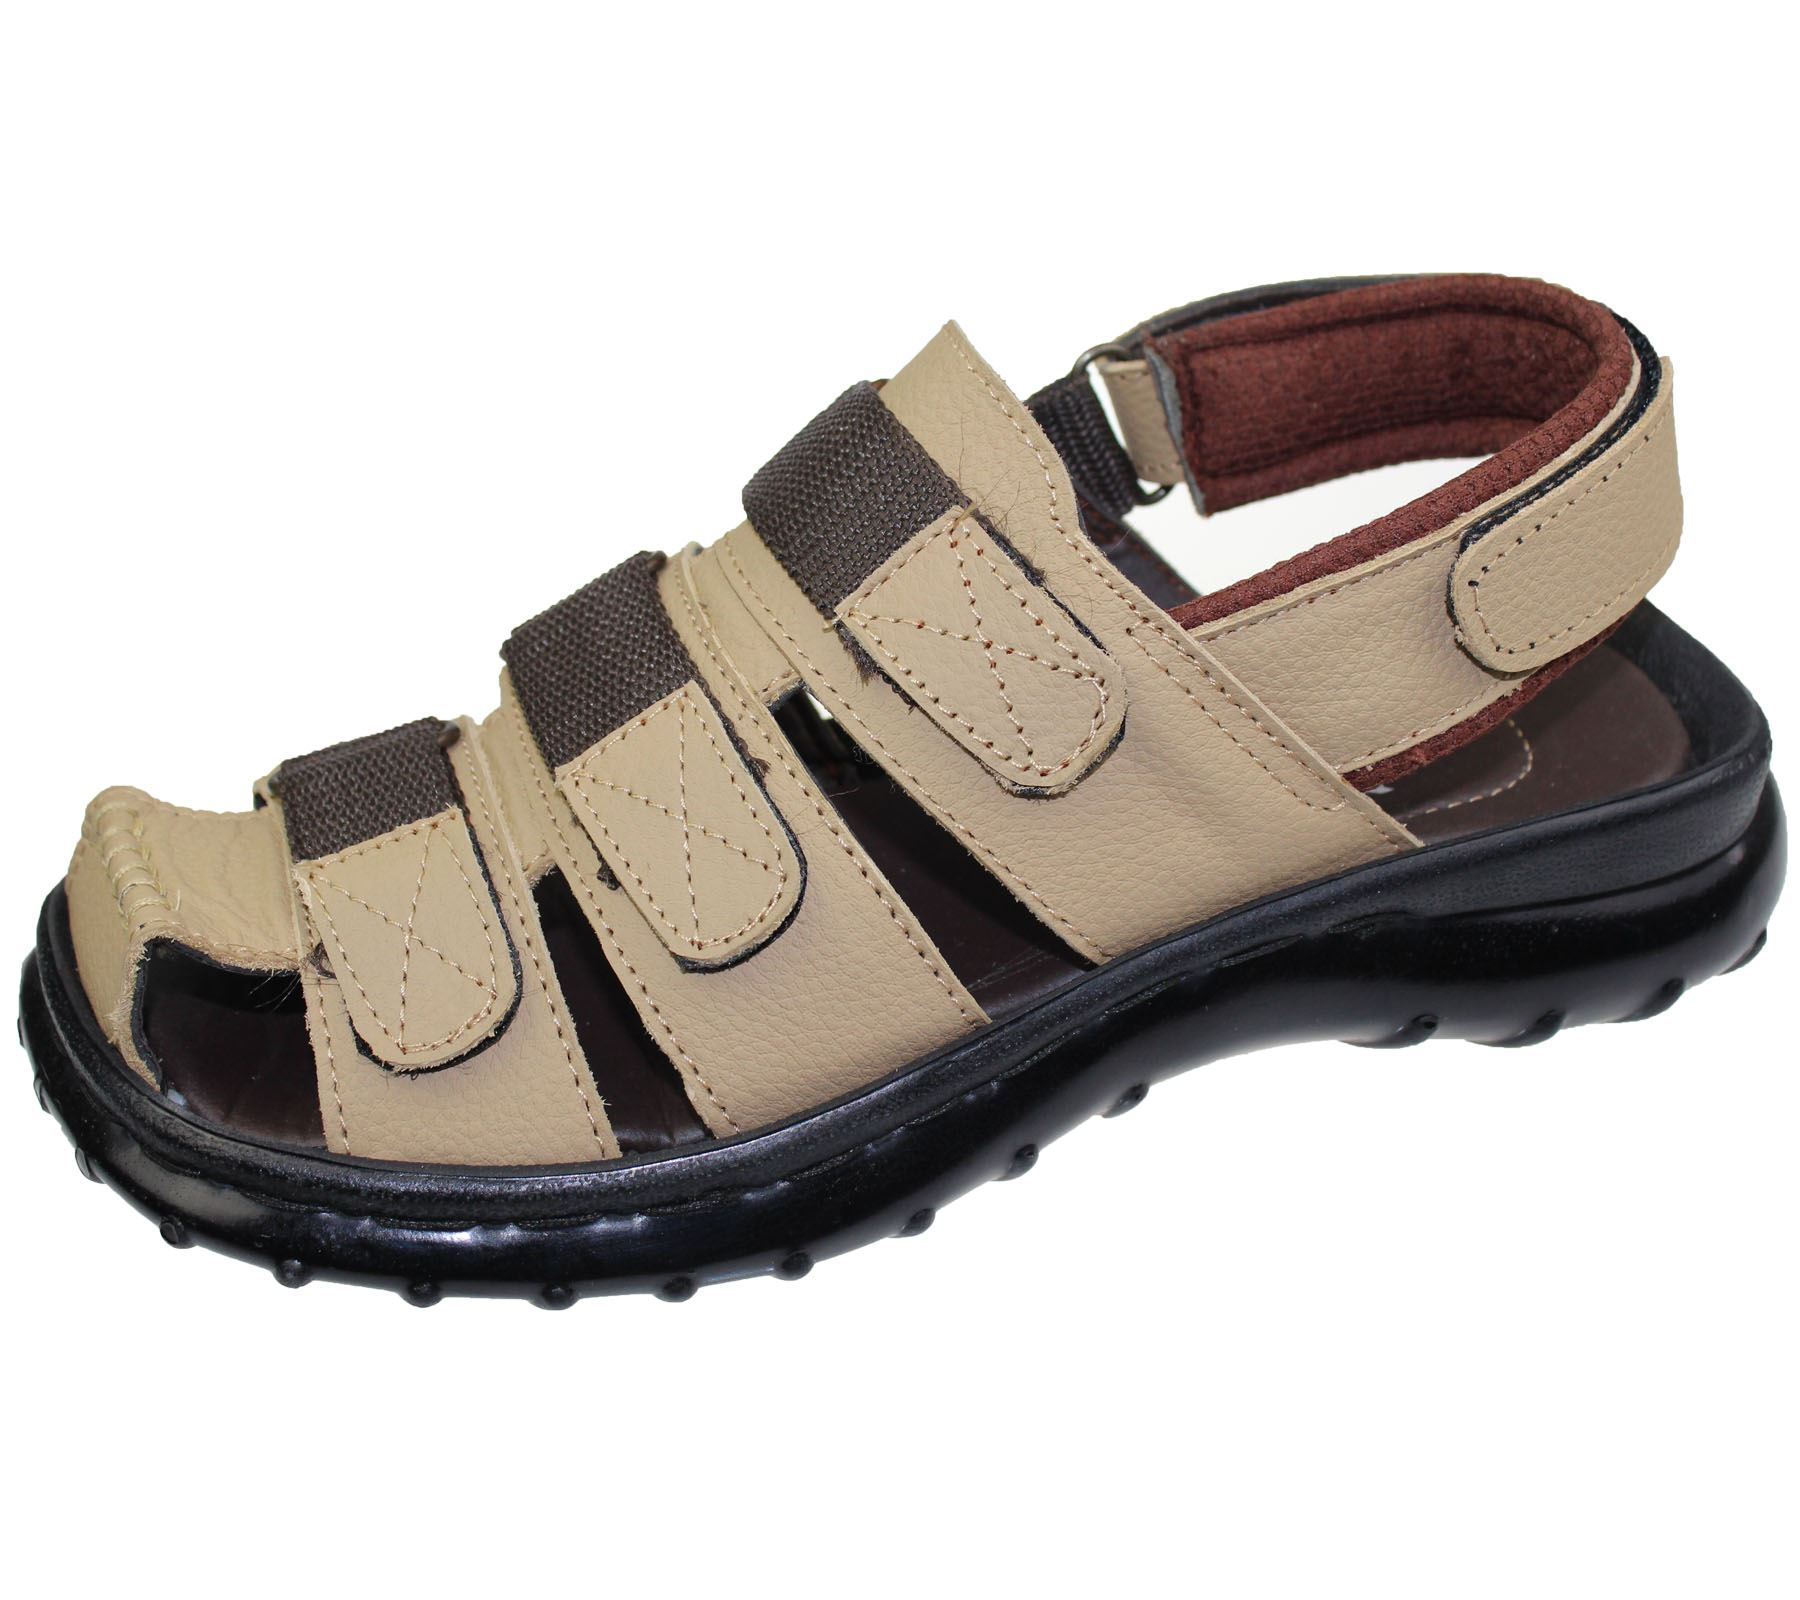 Free shipping BOTH ways on Sandals, Boys, from our vast selection of styles. Fast delivery, and 24/7/ real-person service with a smile. Click or call